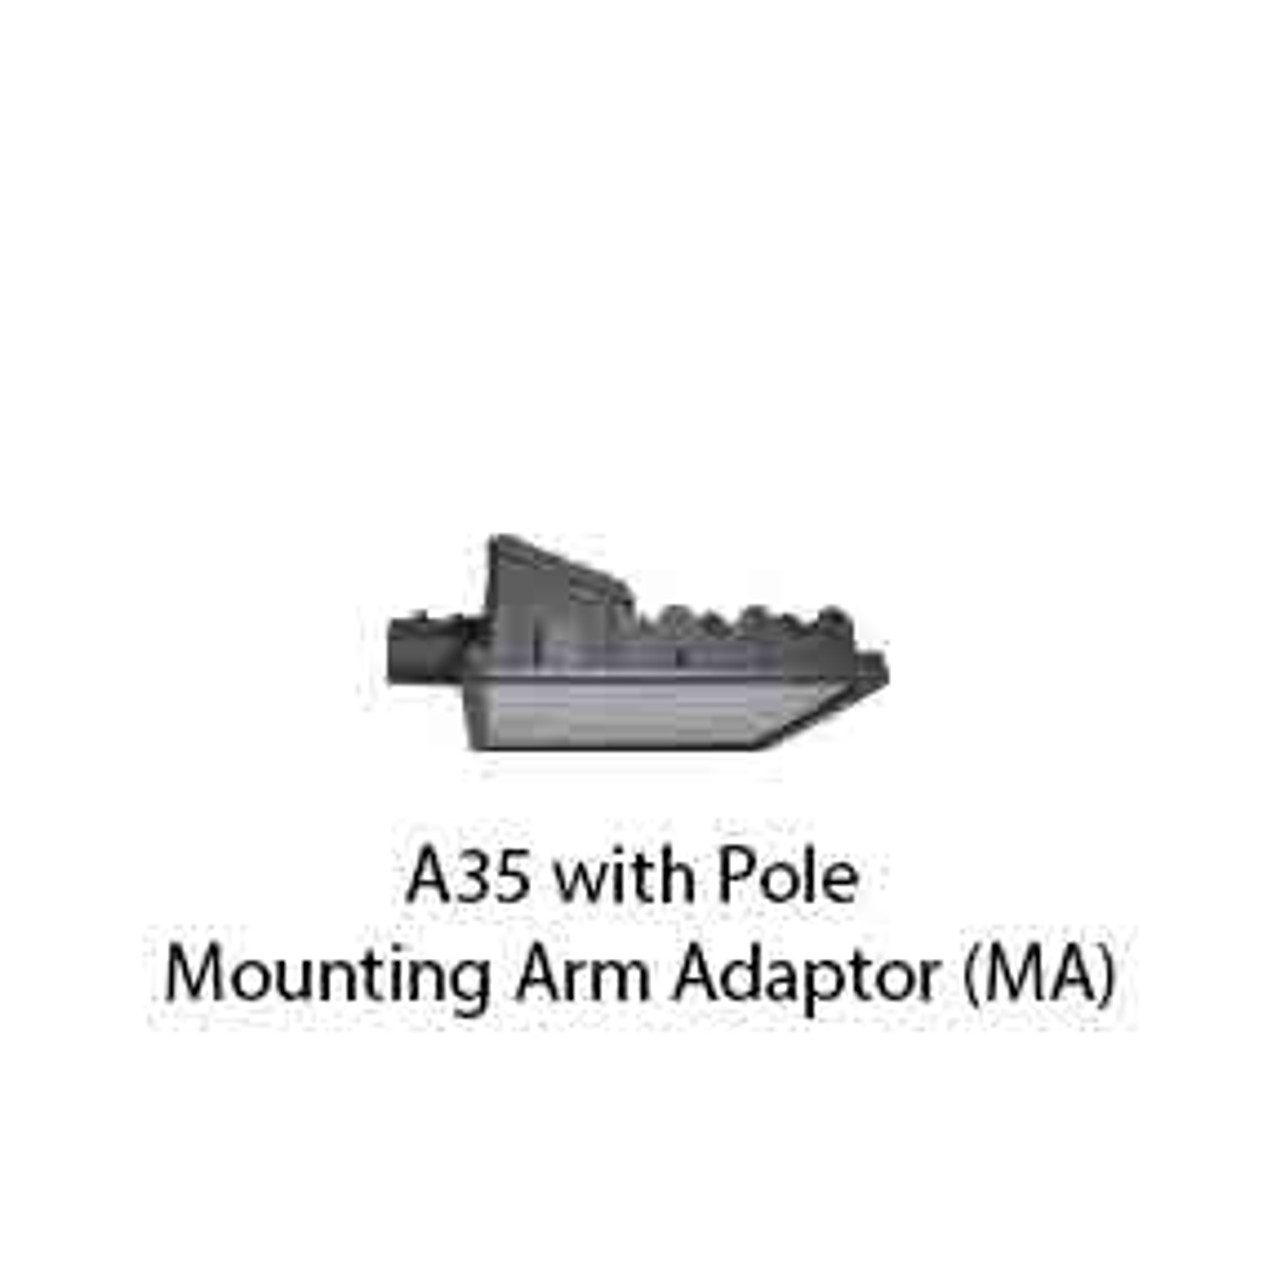 A35 with Pole Mounting Arm Adaptor (MA)